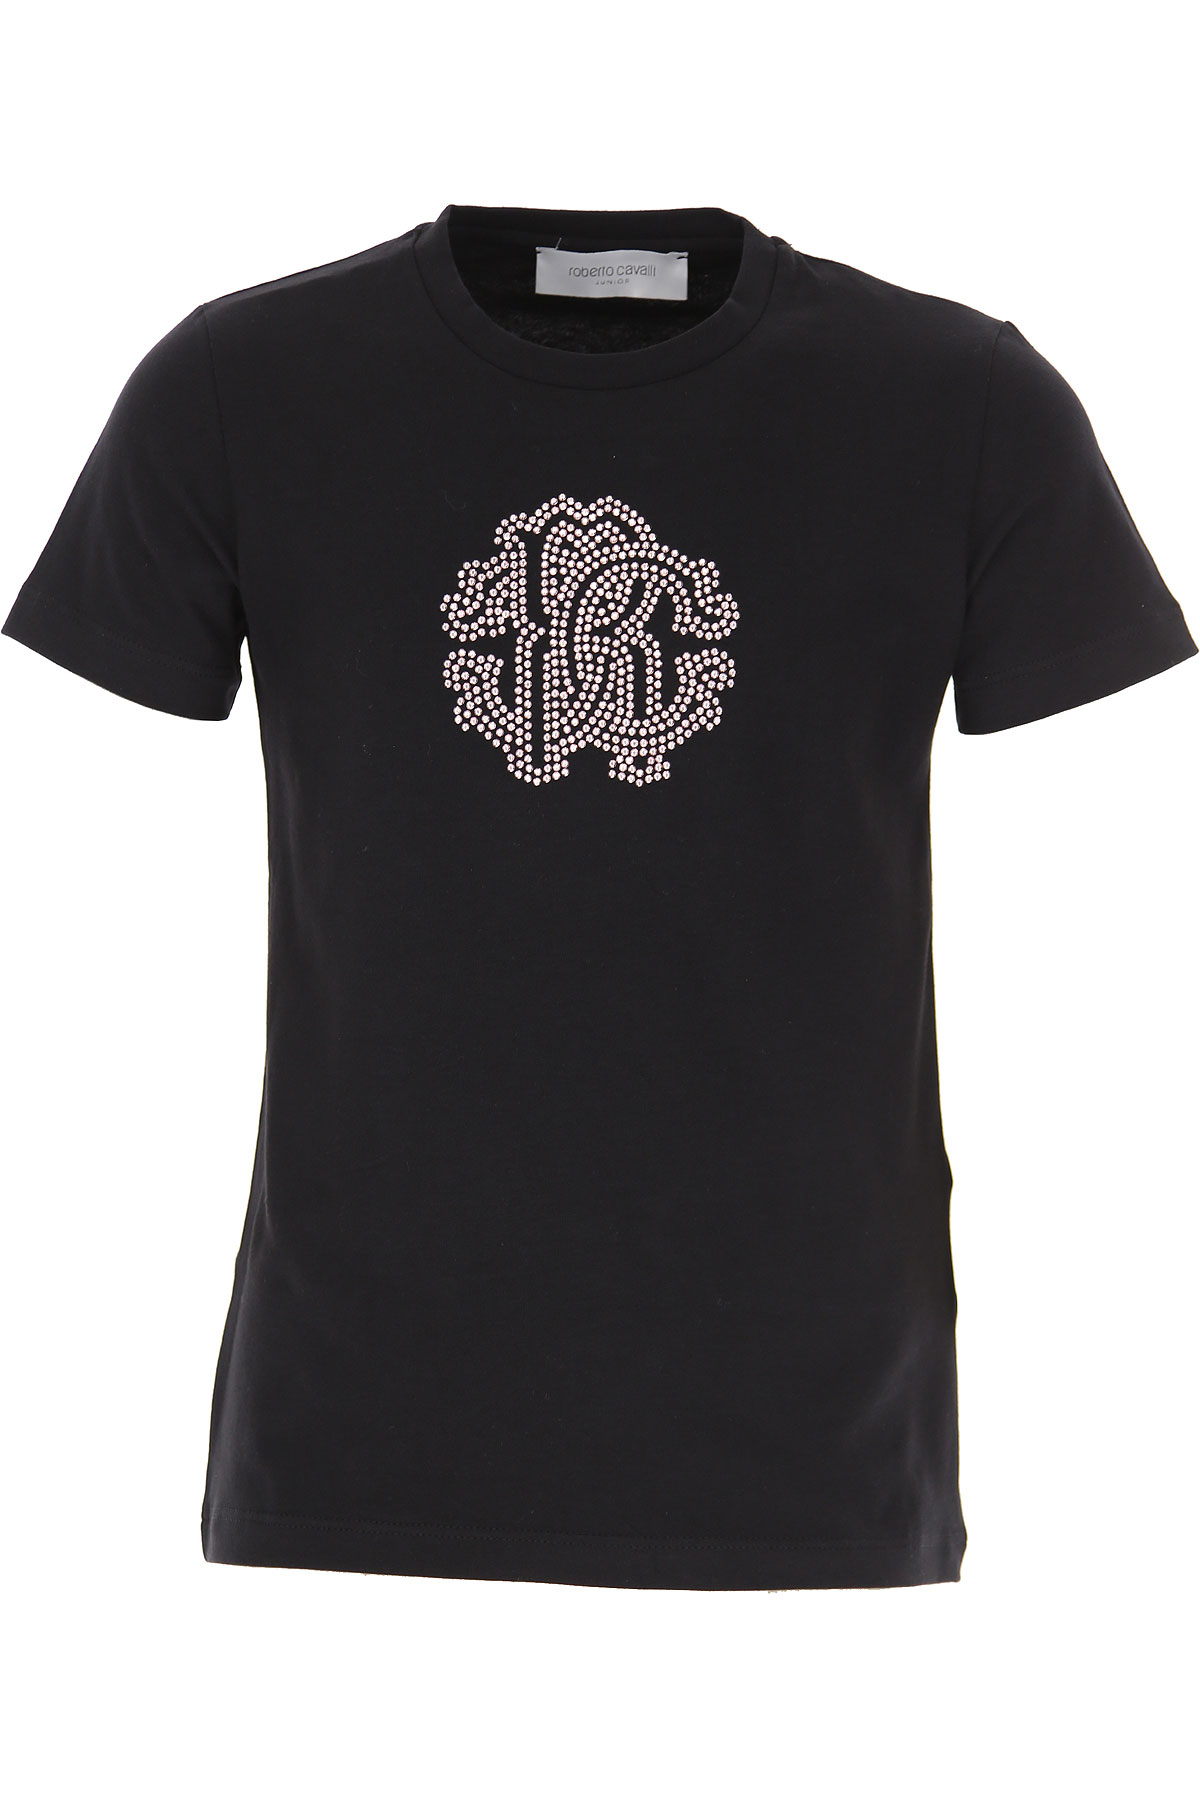 Roberto Cavalli Kids T-Shirt for Girls On Sale, Black, Cotton, 2019, 4Y 6Y 8Y M S